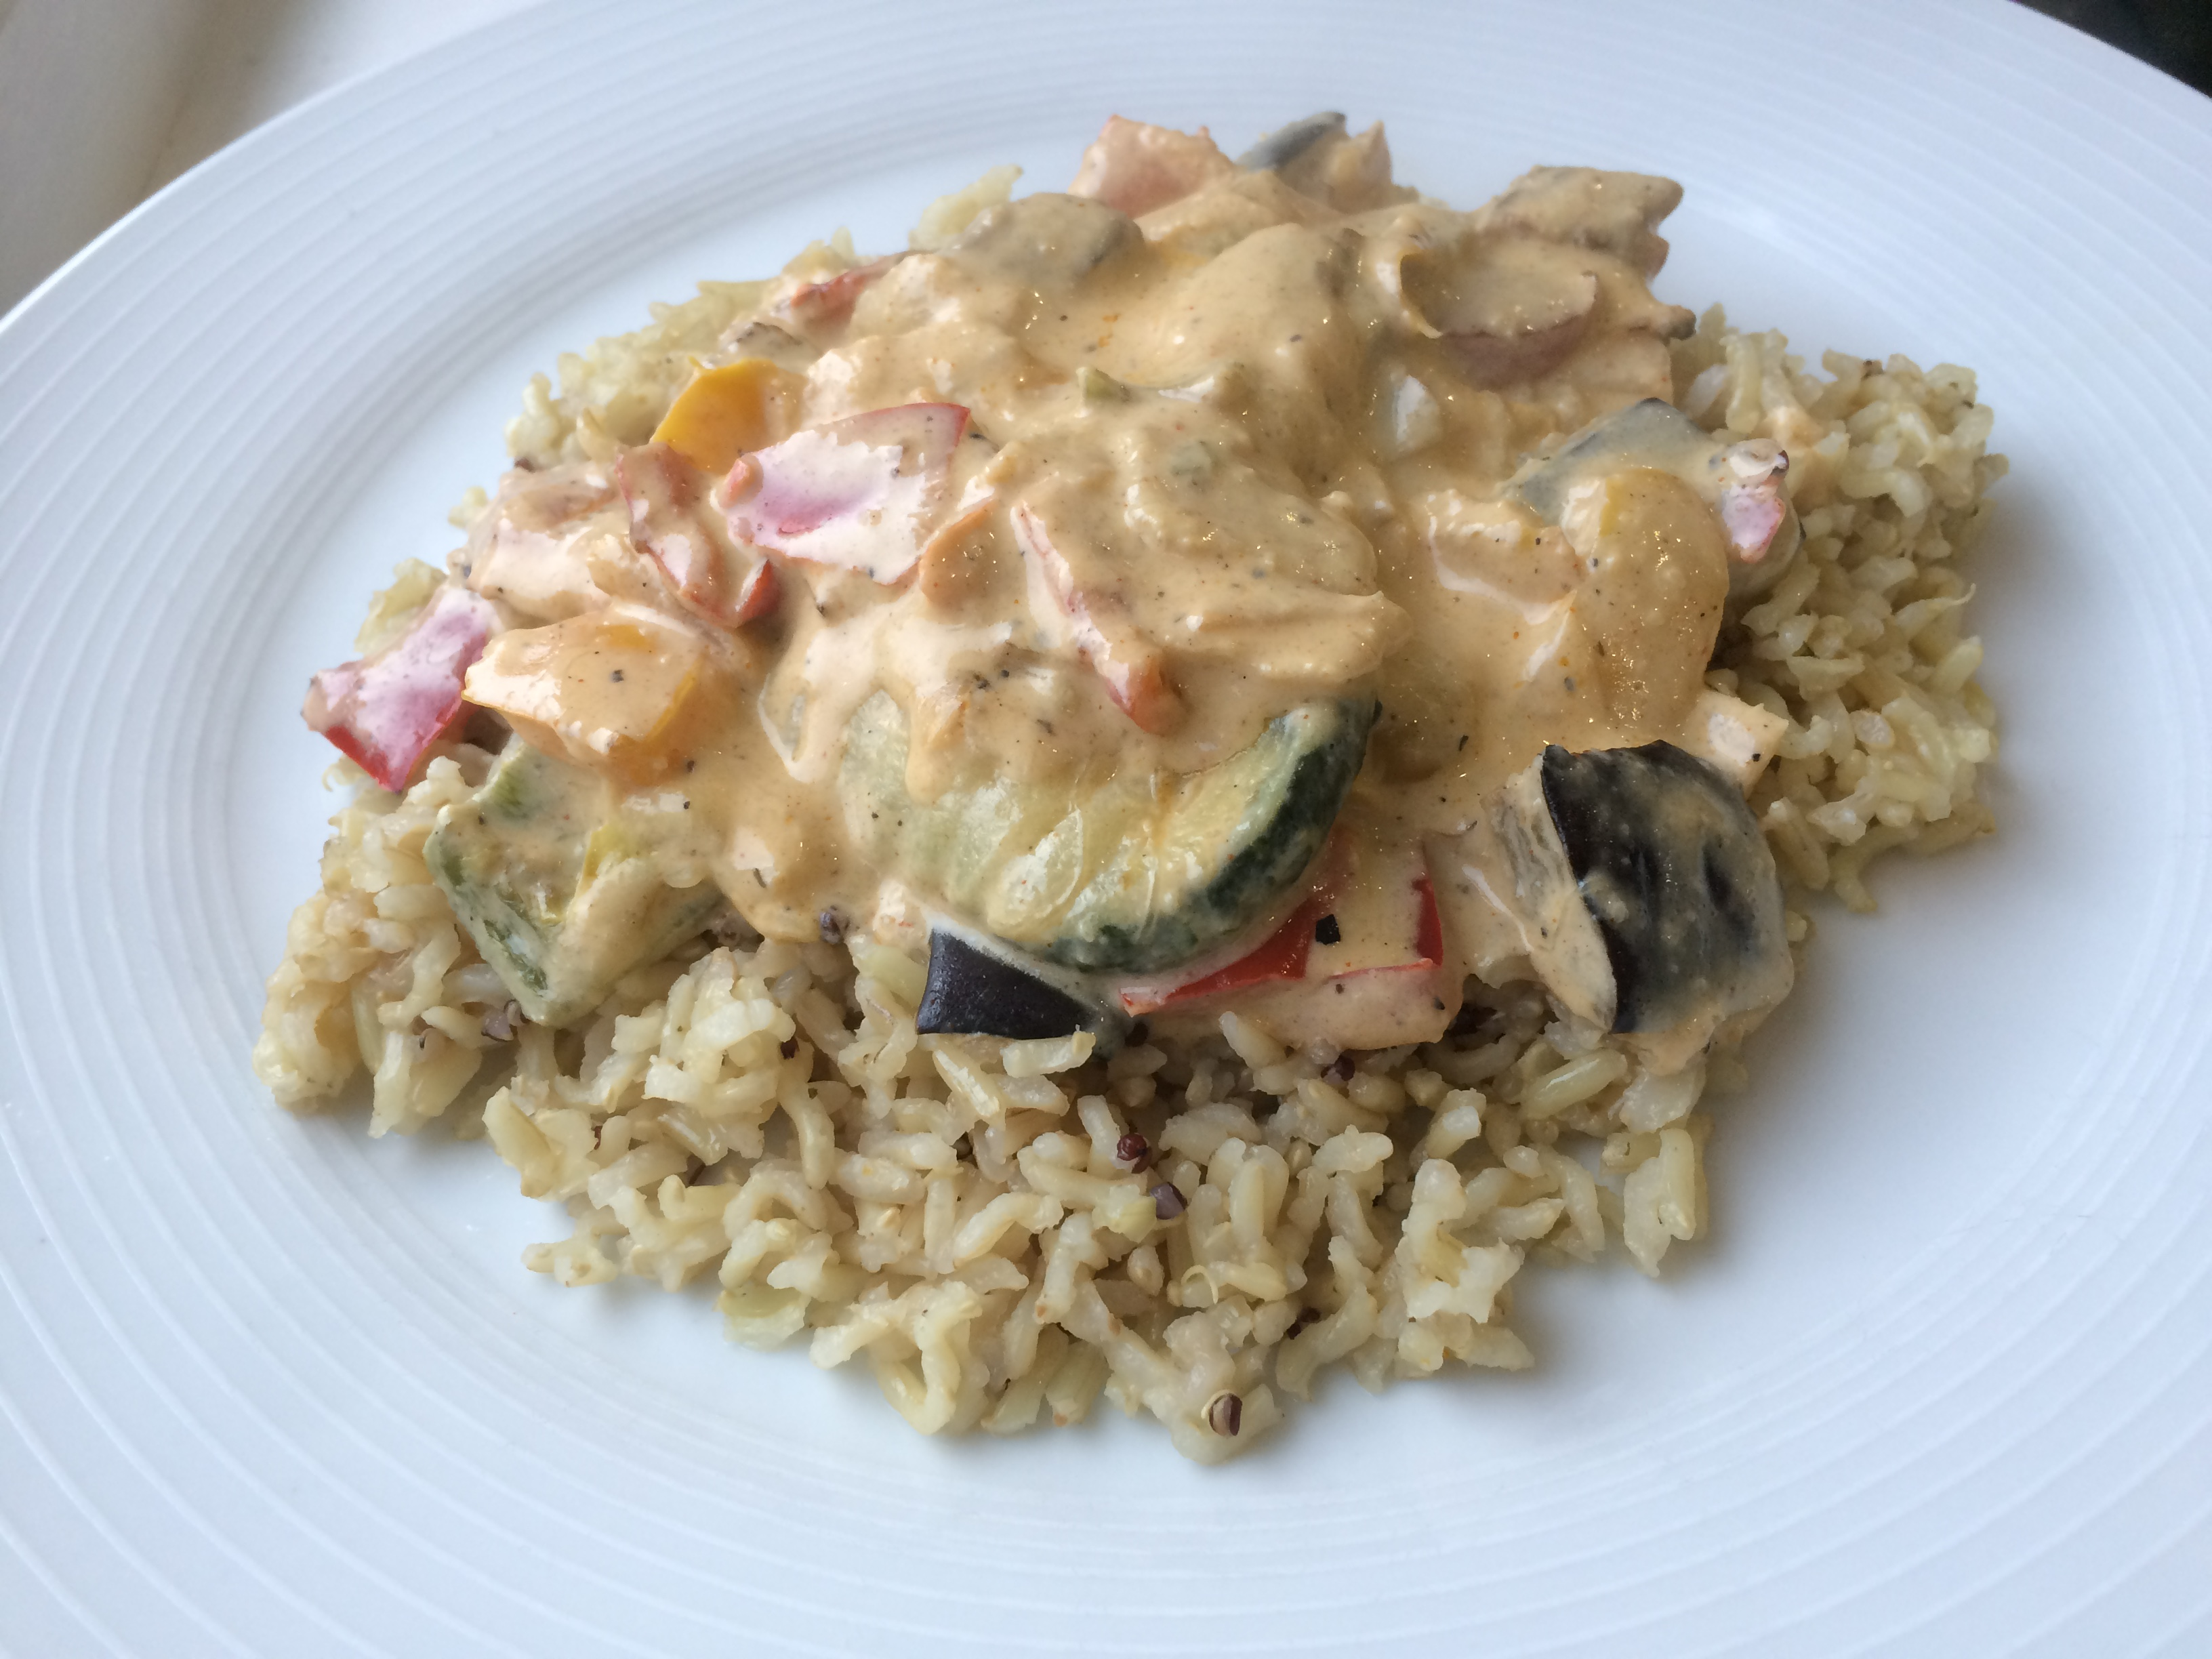 Grilled vegetables with cream cheese and served on rice.